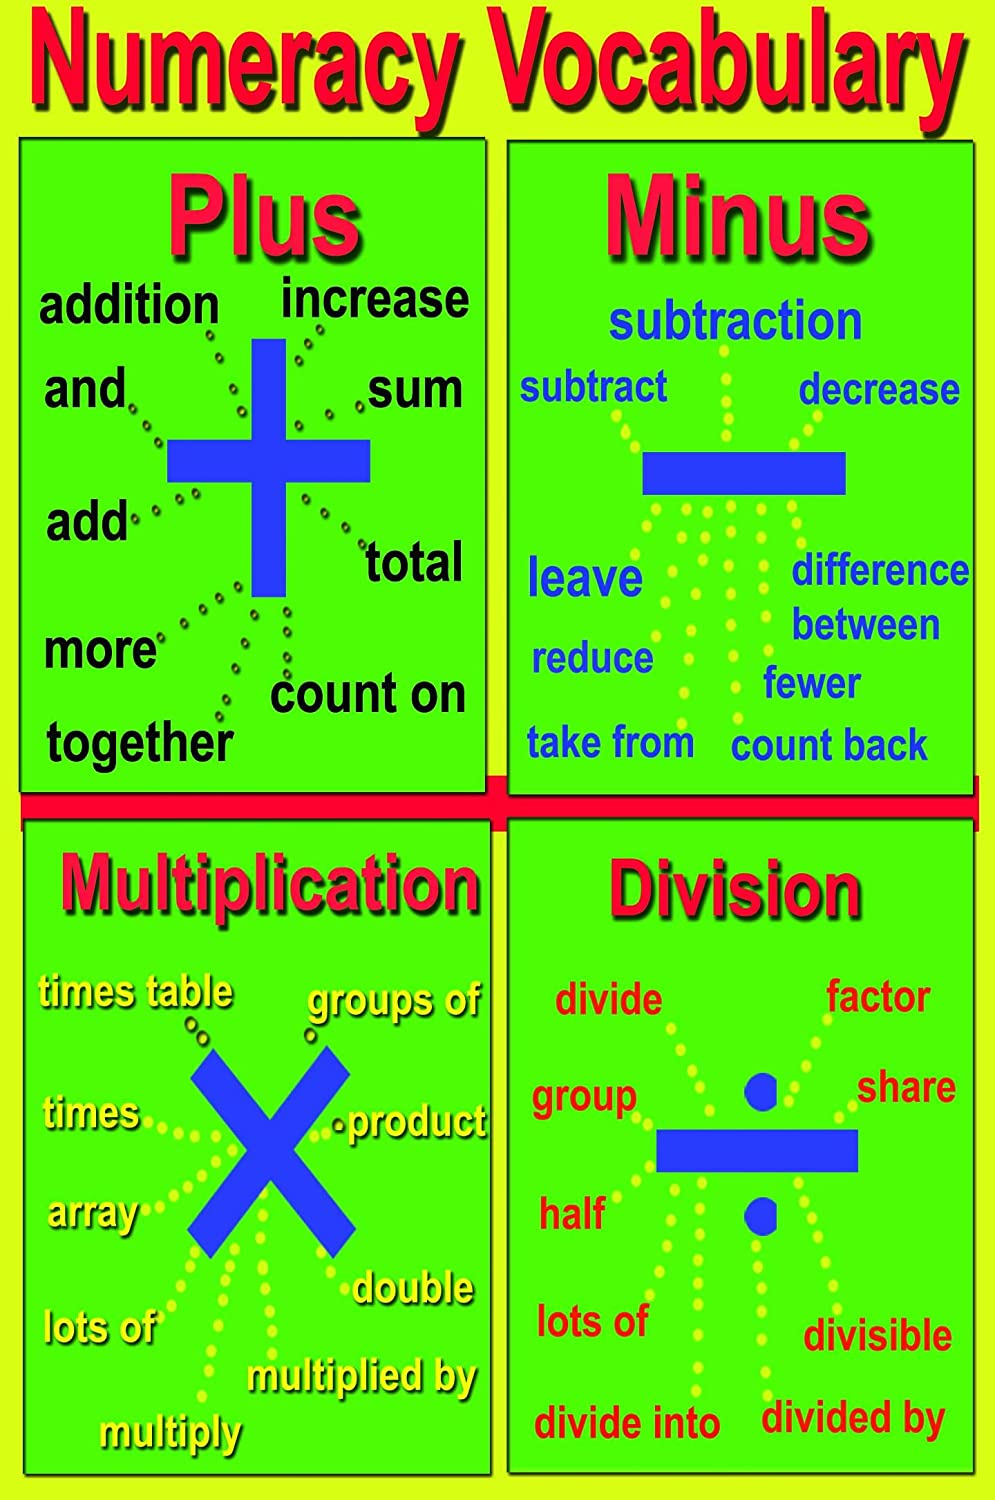 worksheet Addition Subtraction Multiplication Division laminated numeracy vocabulary educational poster chart explain addition subtraction division multiplication for children kid